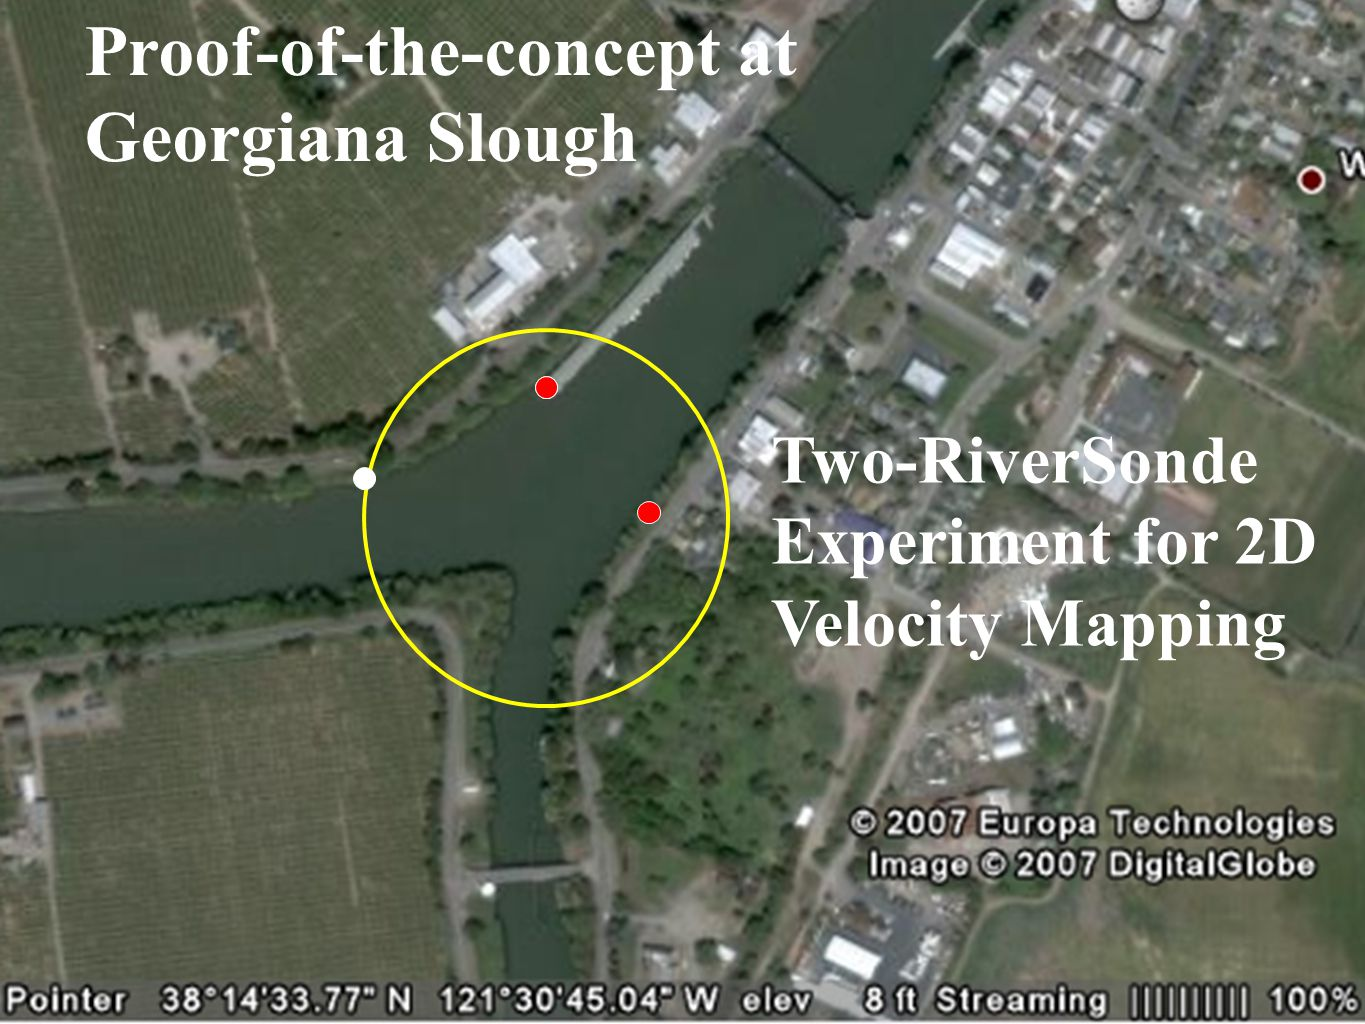 Proof-of-the-concept at Georgiana Slough